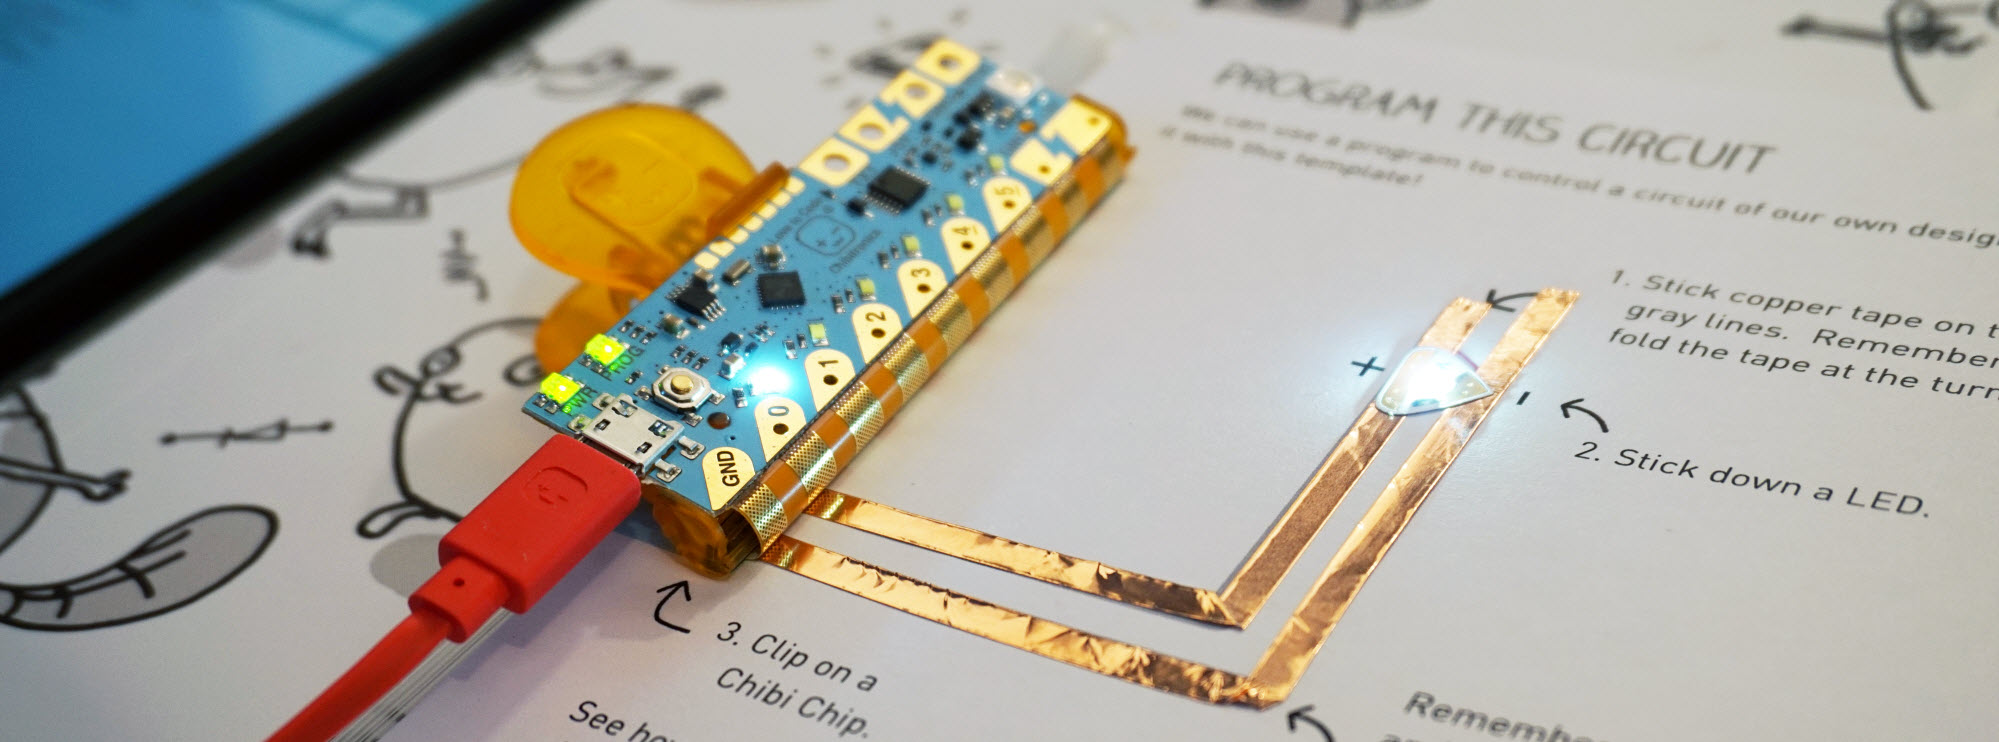 Chibi Chip clipped to a page, lighting an LED